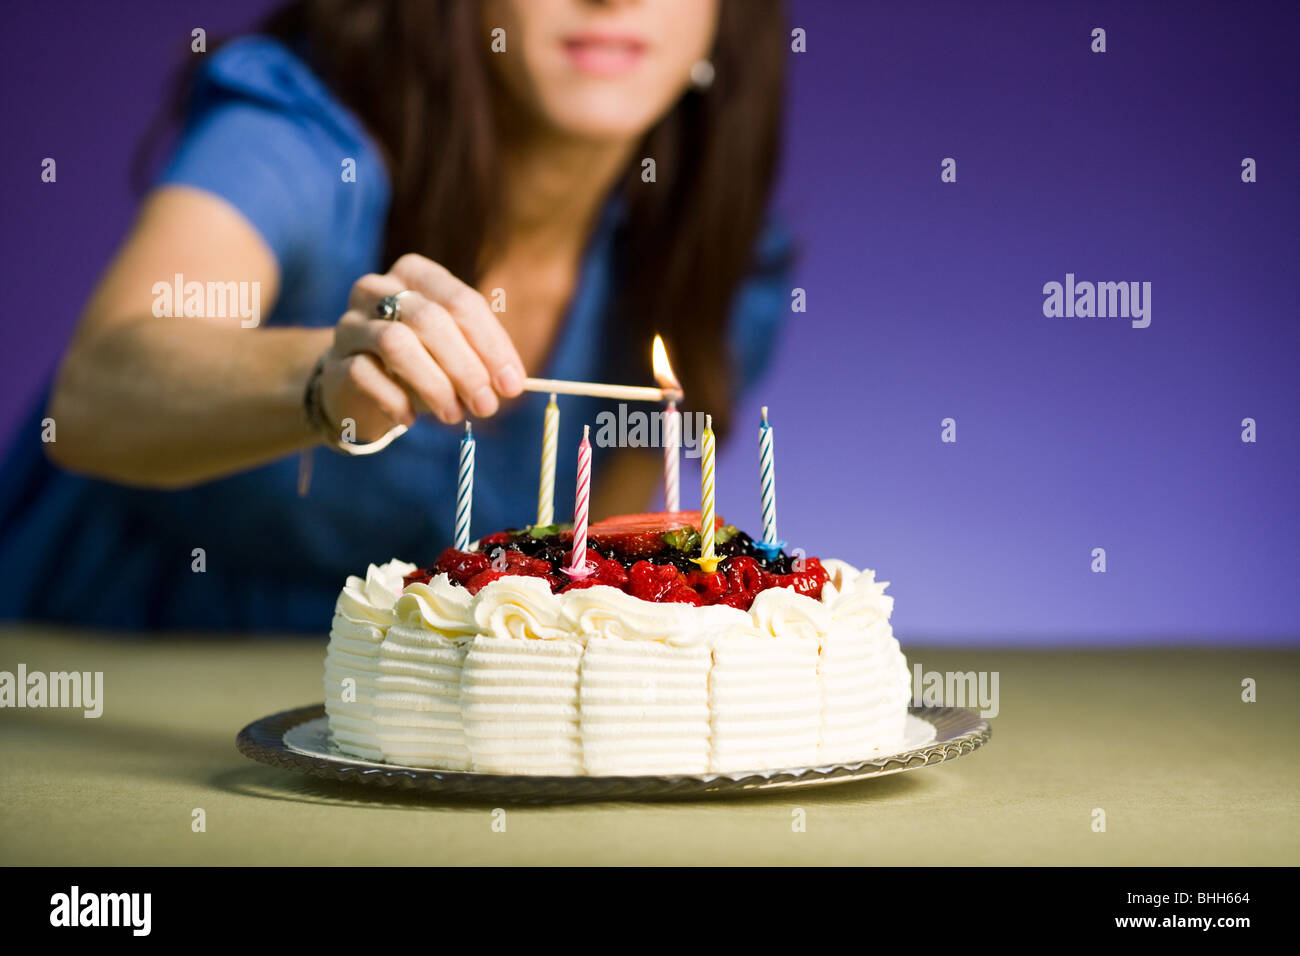 Woman With A Birthday Cake